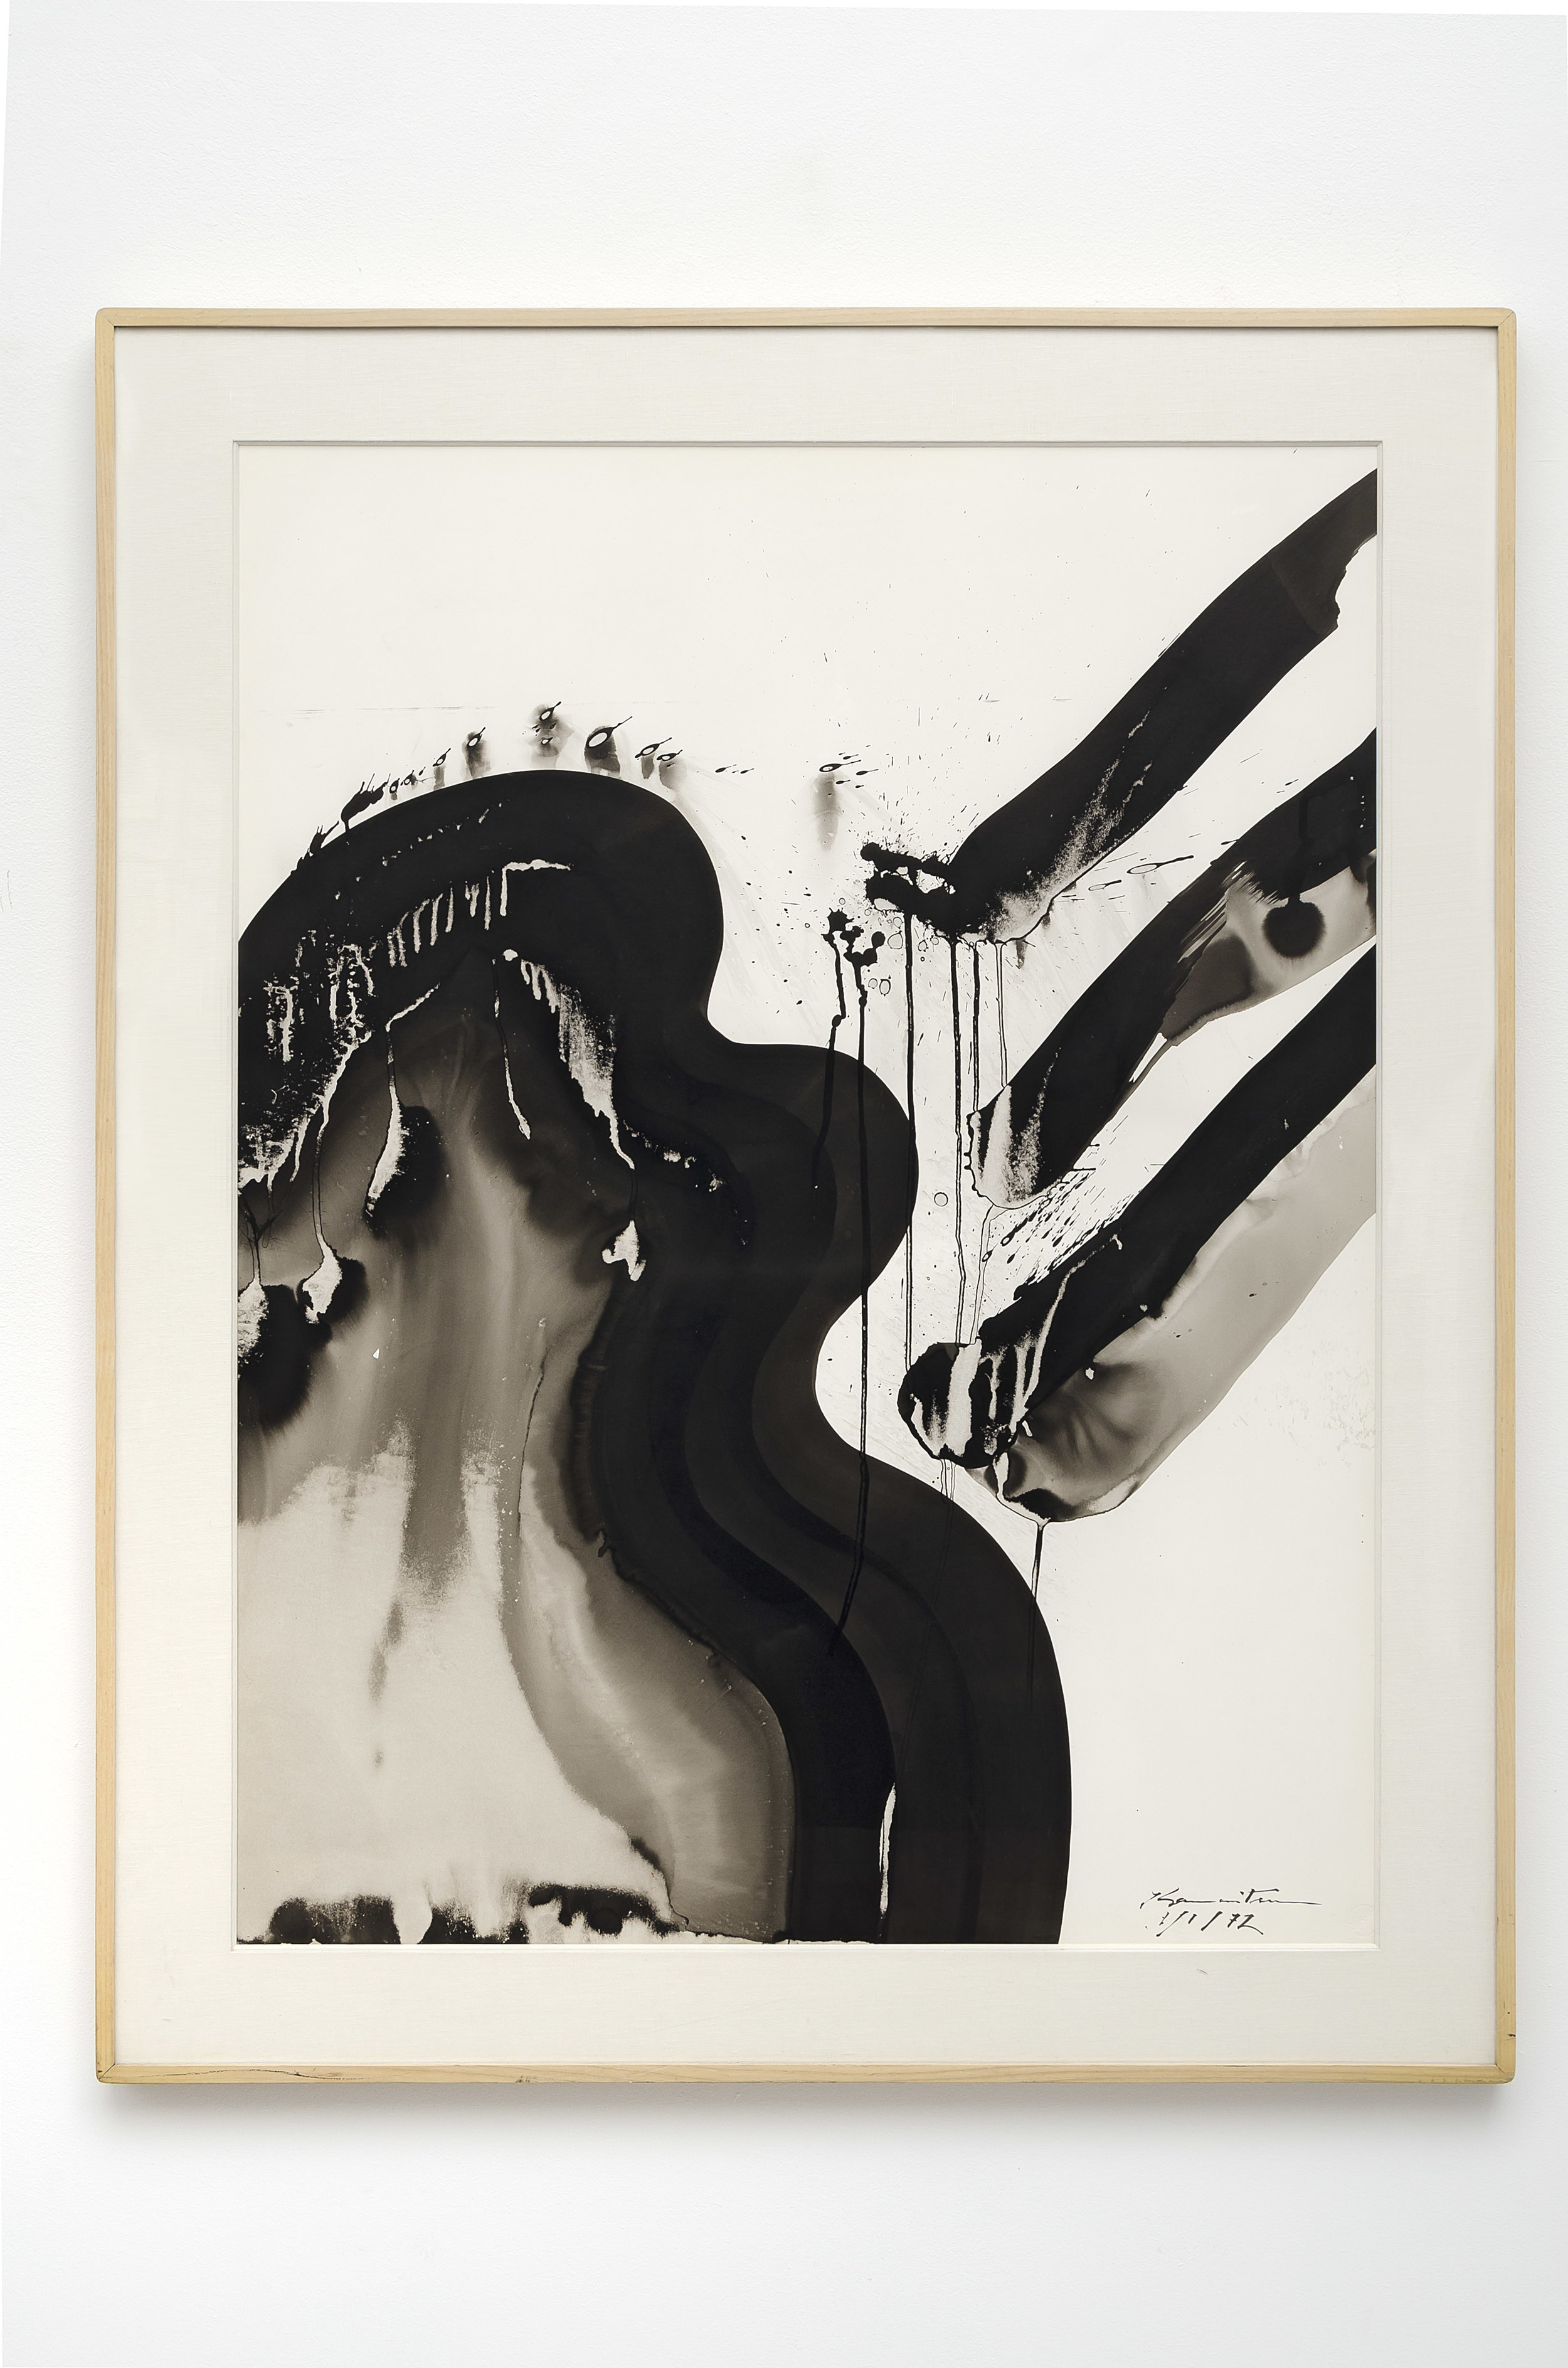 Pacific Series- 2 am   1972  sumi ink on paper  39 1/4 x 28 7/8 inches, 99.7 x 73.3 centimeters